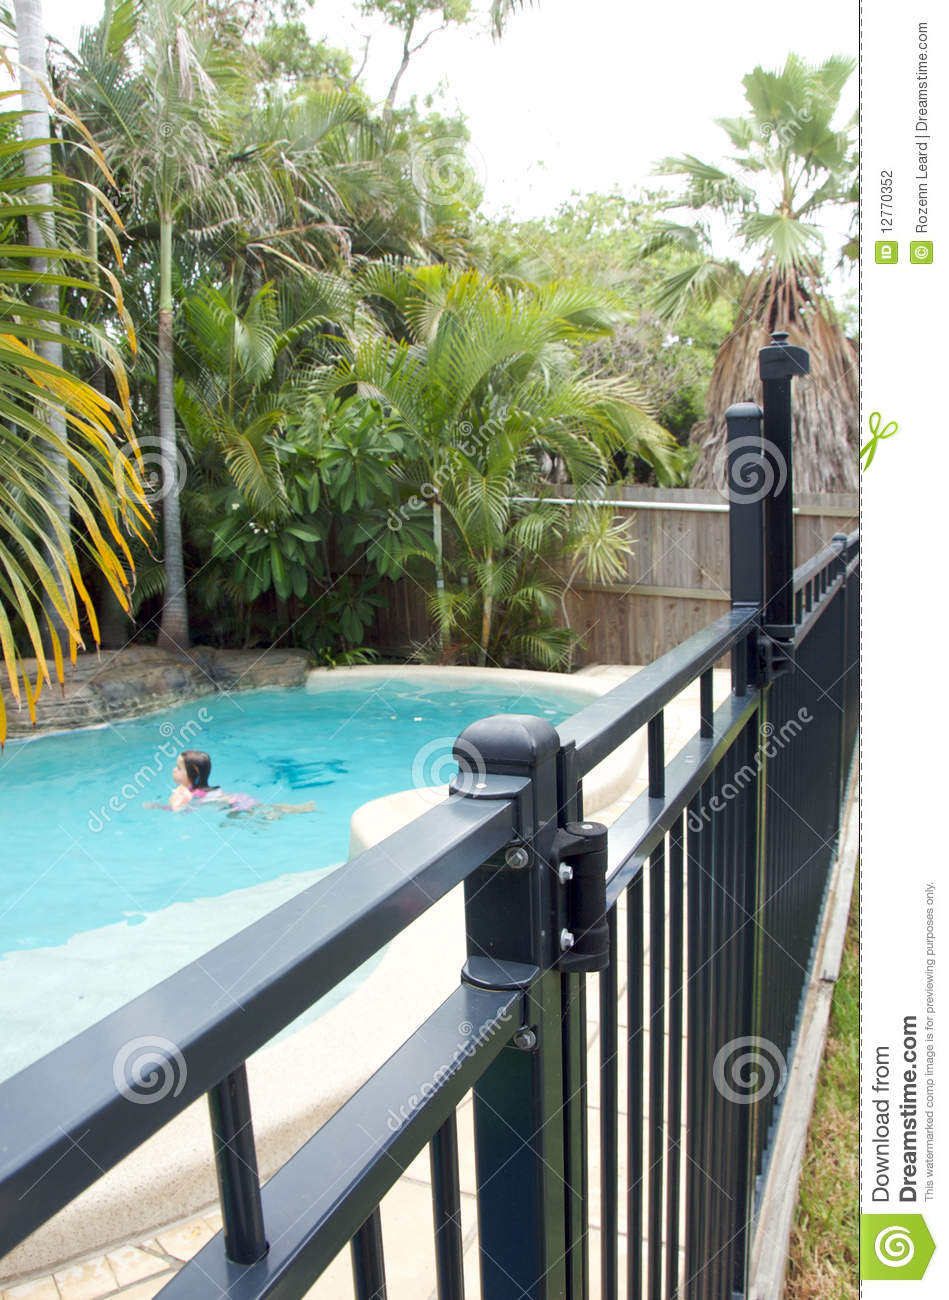 Swimming Pool Fence Stock Photo Image Of Protection 12770352